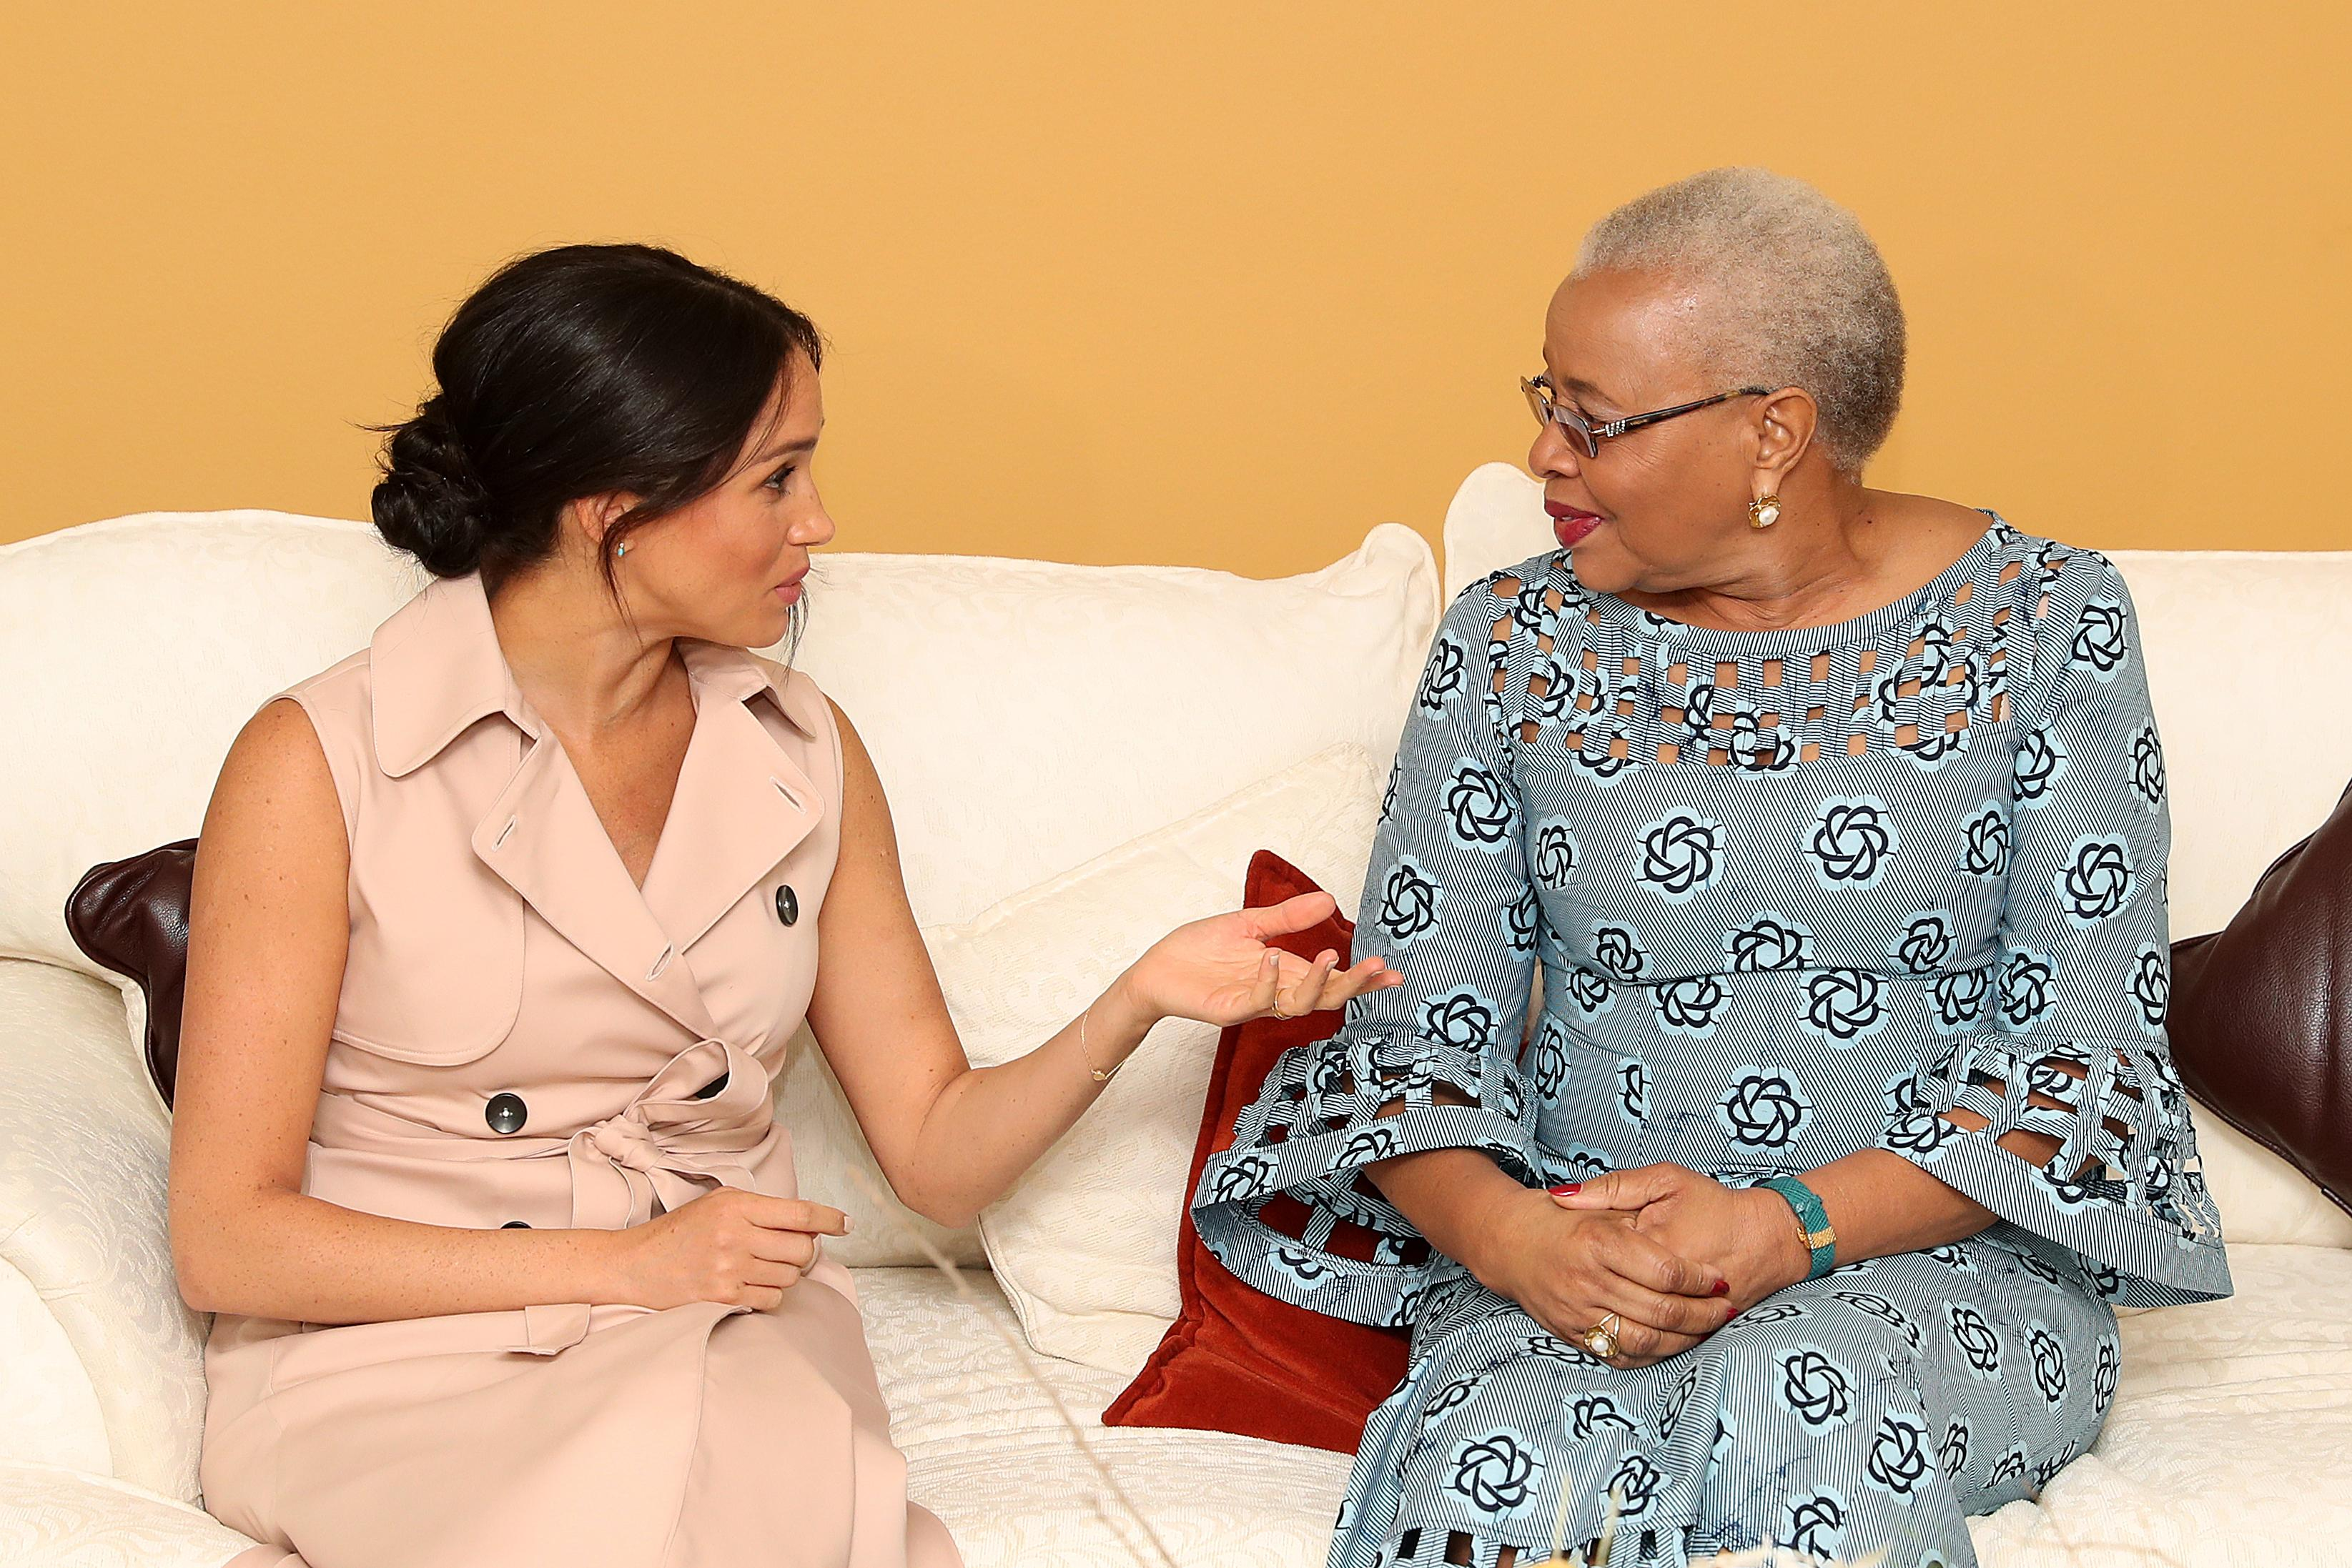 JOHANNESBURG, SOUTH AFRICA - OCTOBER 02: Meghan, Duchess of Sussex speaks to Graca Machel, widow of the late Nelson Mandela on October 02, 2019 in Johannesburg, South Africa. The Duke last met with Mrs Machel during his visit to South Africa in 2015. (Photo by Chris Jackson-Pool/Getty Images)